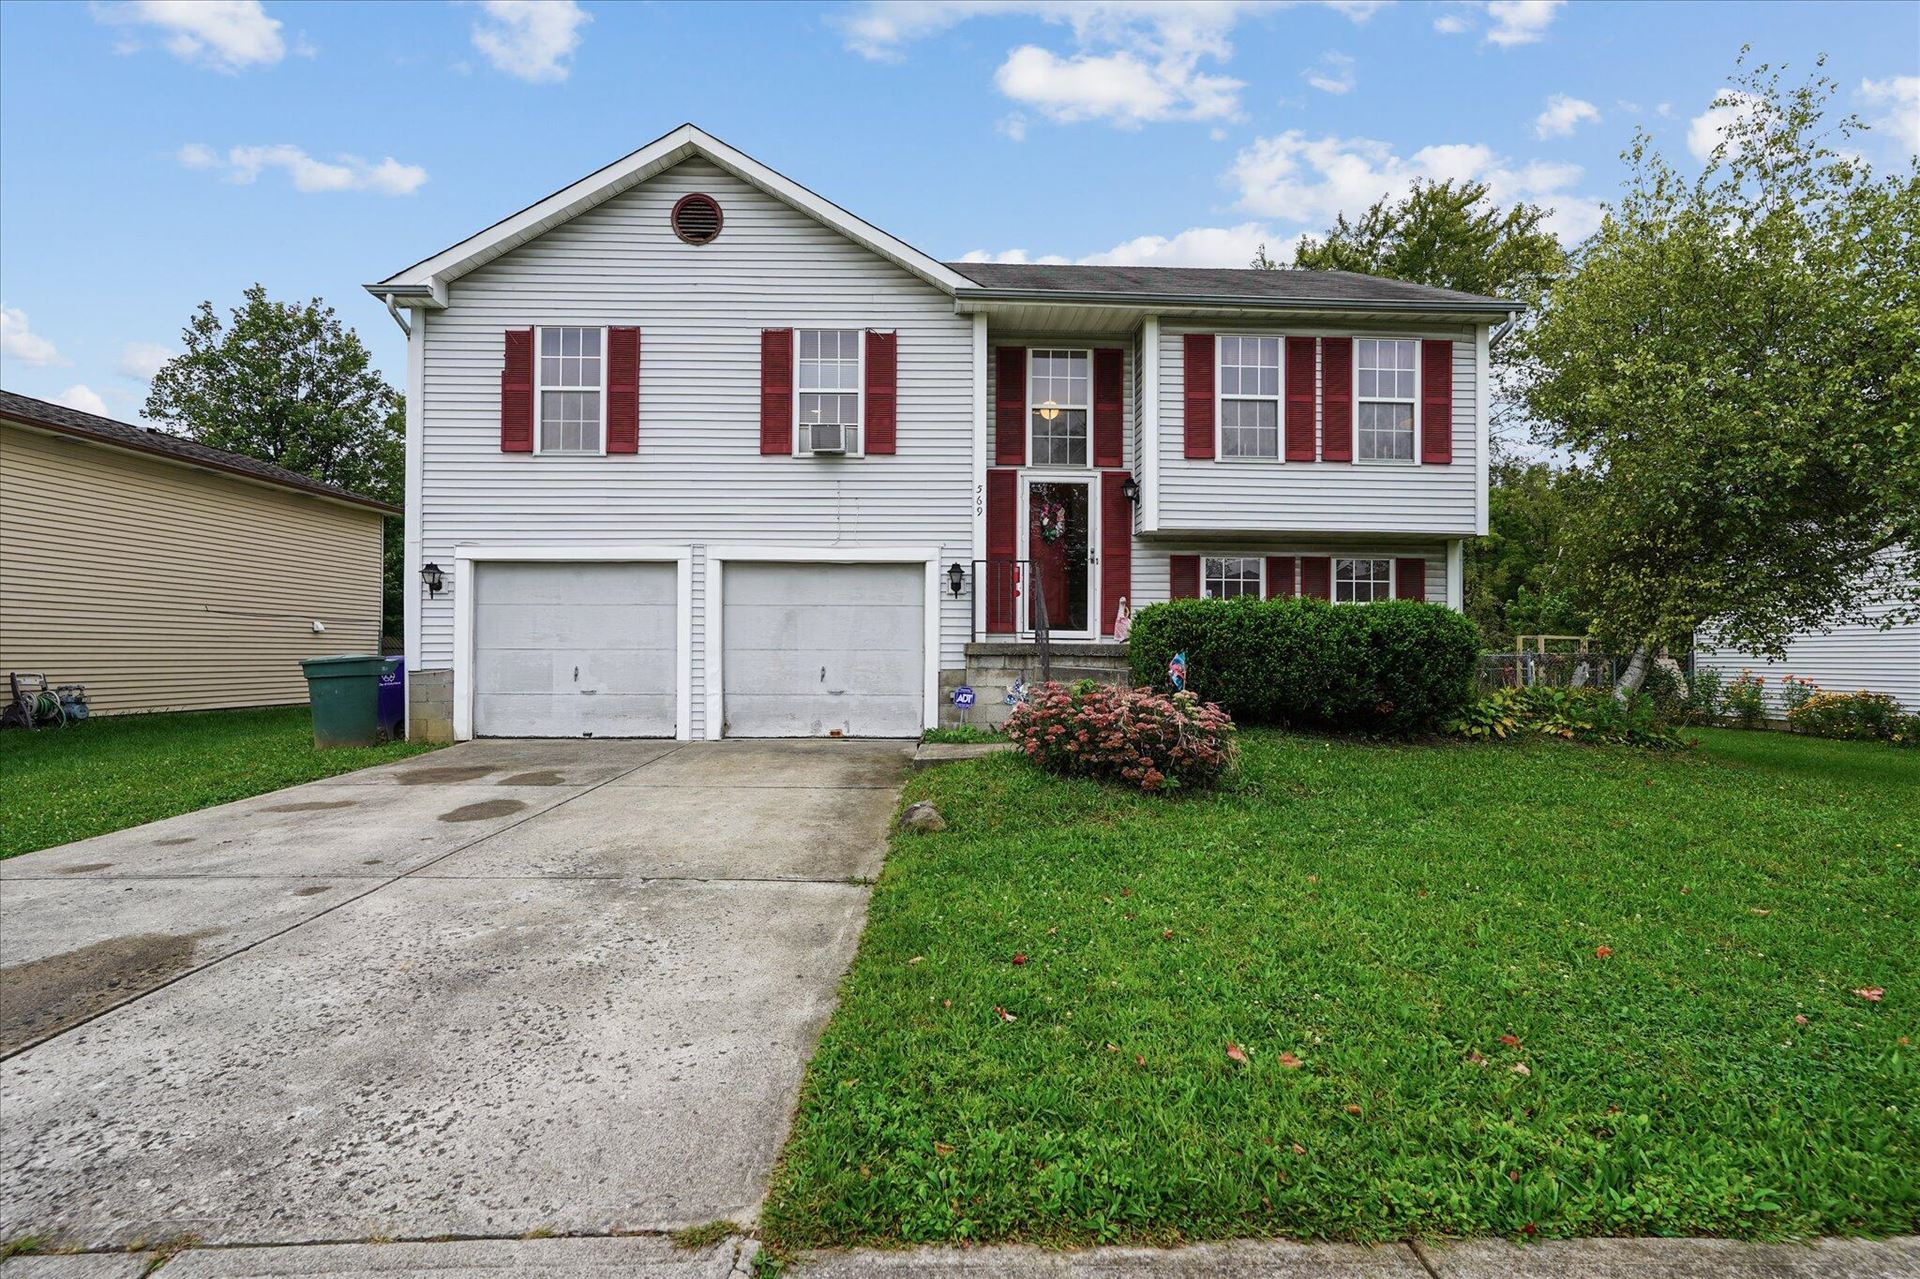 Photo of 4569 Grenville Drive, Columbus, OH 43231 (MLS # 221036768)